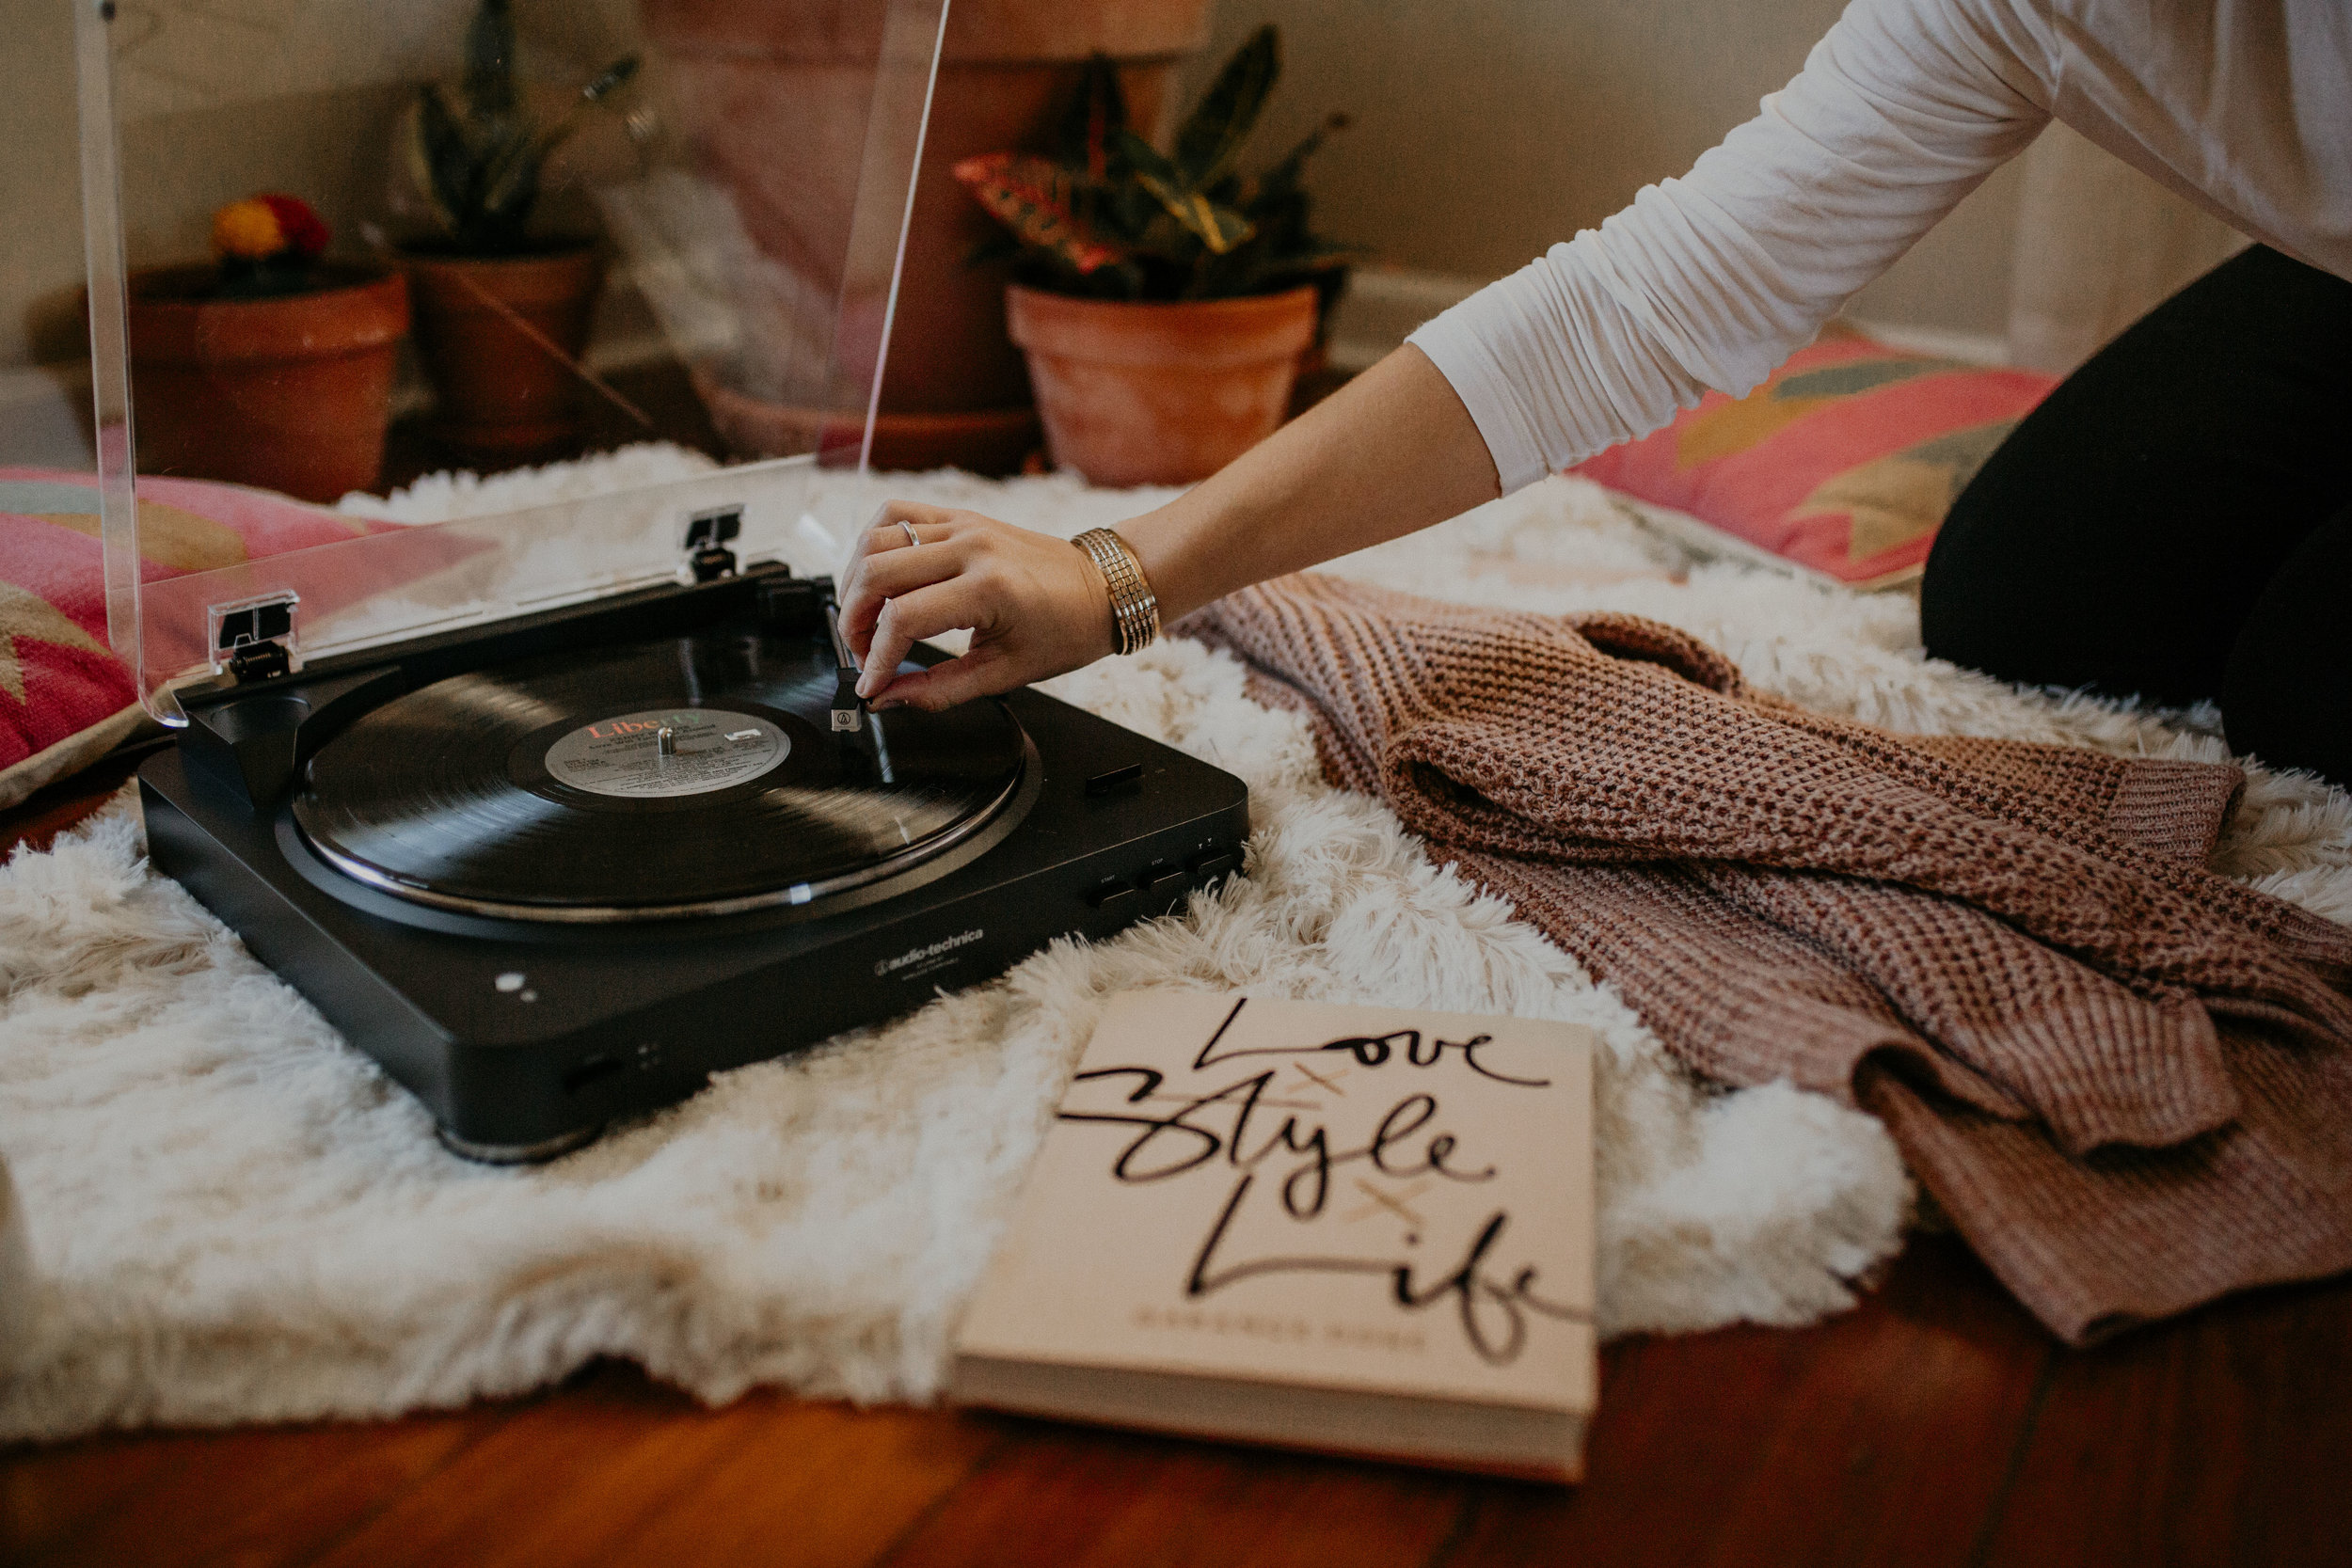 Shop the  record player ,  sweater ,  blanket  and  book from Urban Outfitters